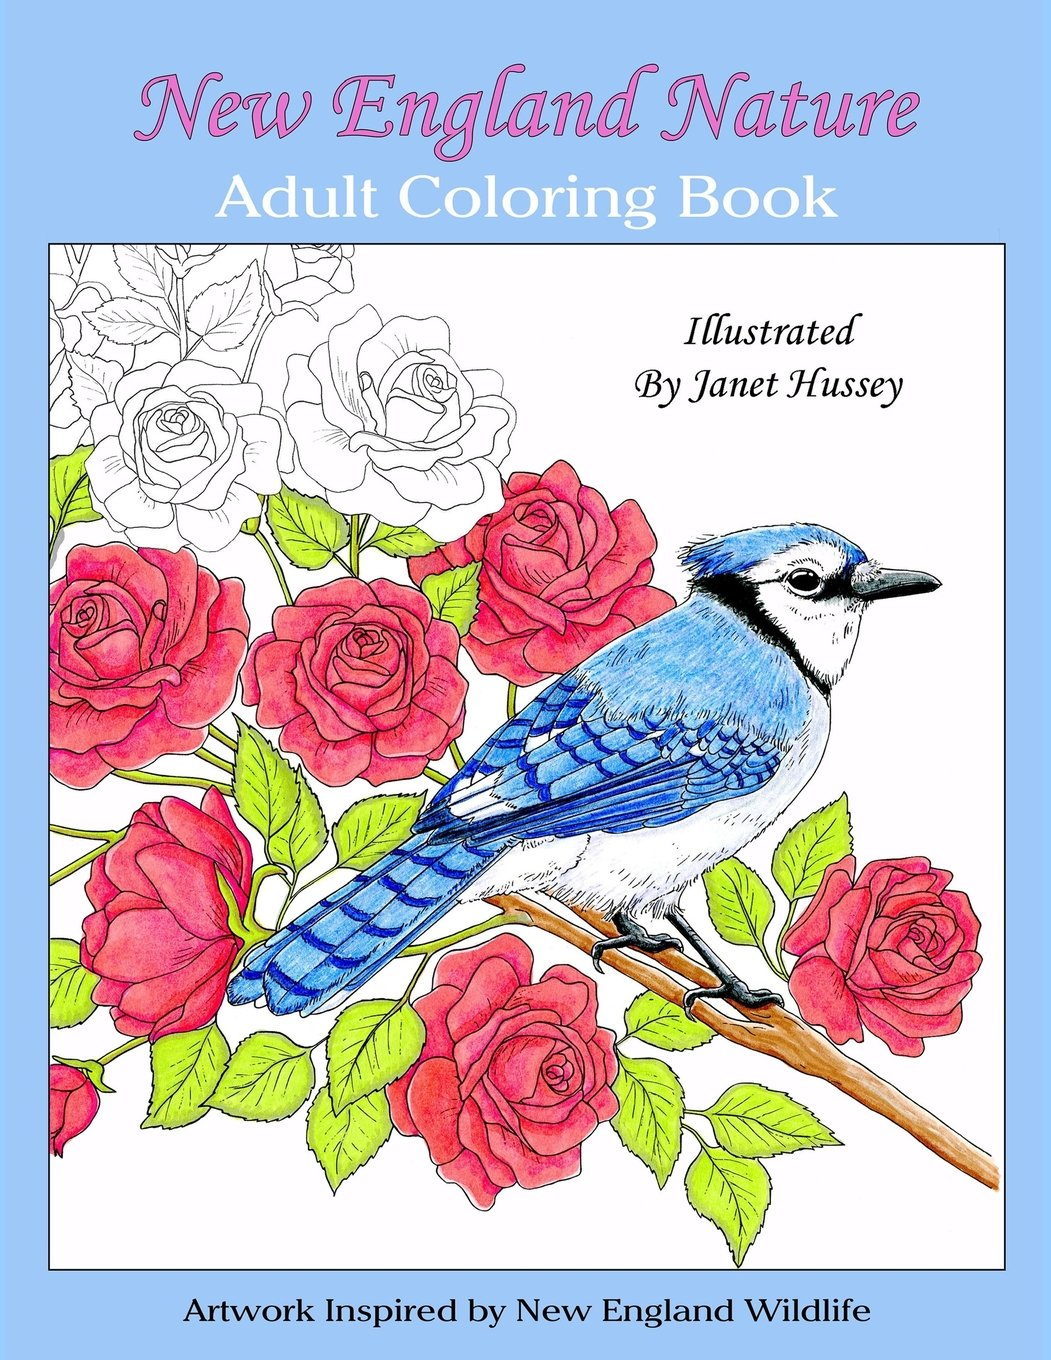 New England Nature: Adult Coloring Book ebook